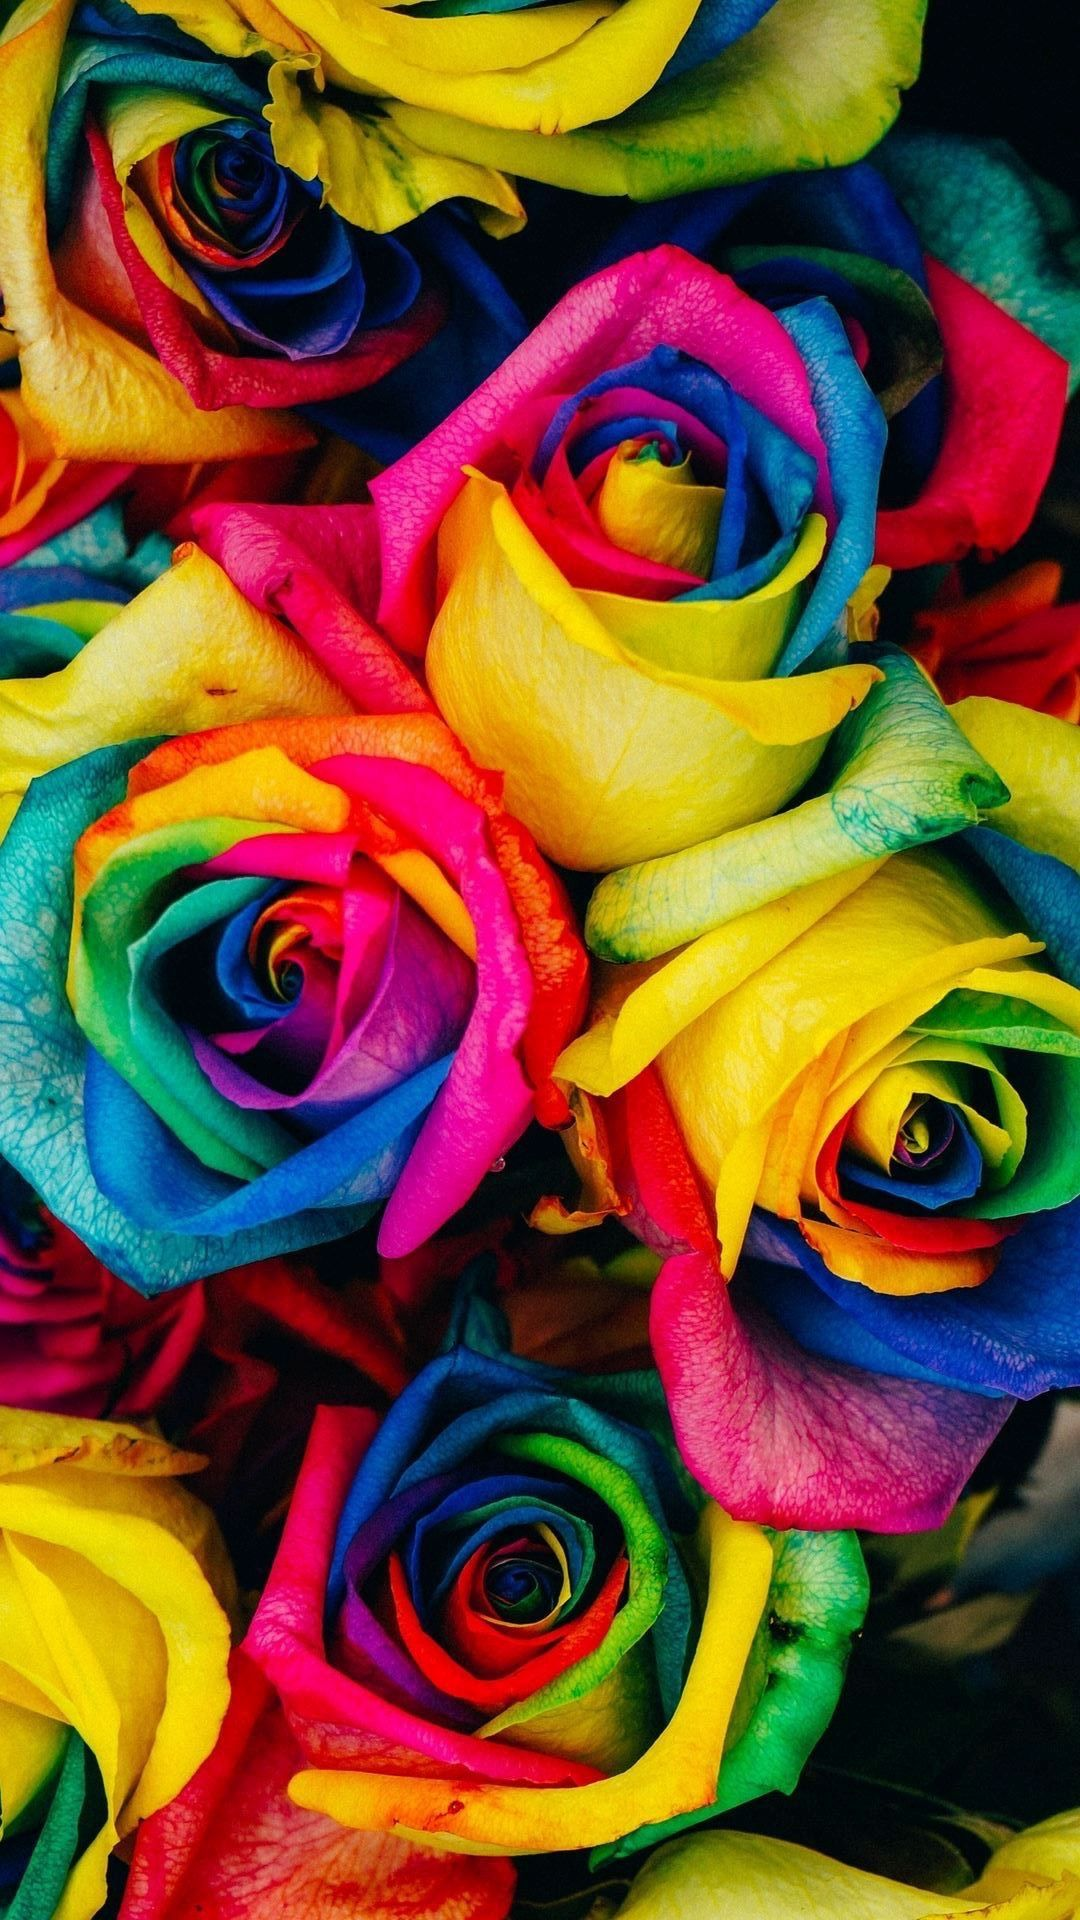 Pin by Grace on レインボーローズ in 2020 Rainbow roses, Rose